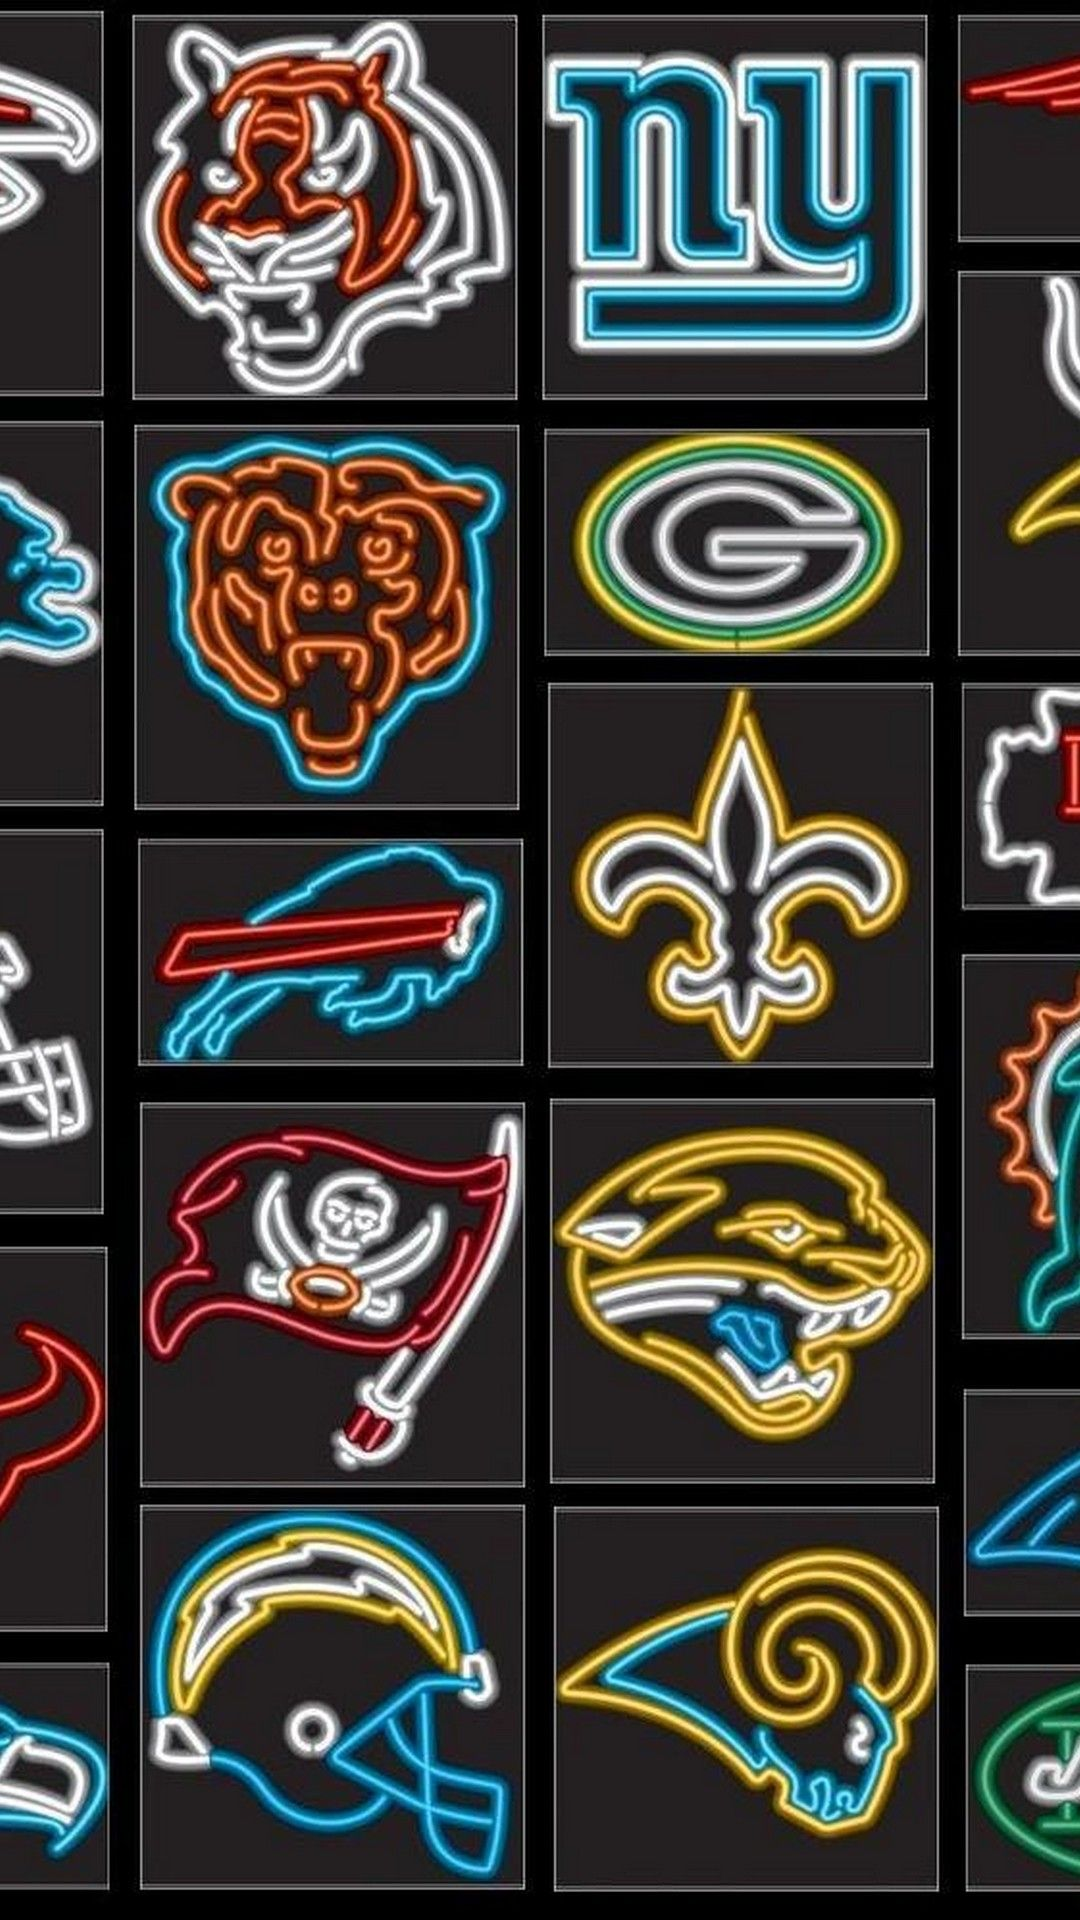 Cool NFL HD Wallpaper For iPhone 2020 NFL Football Wallpapers 1080x1920